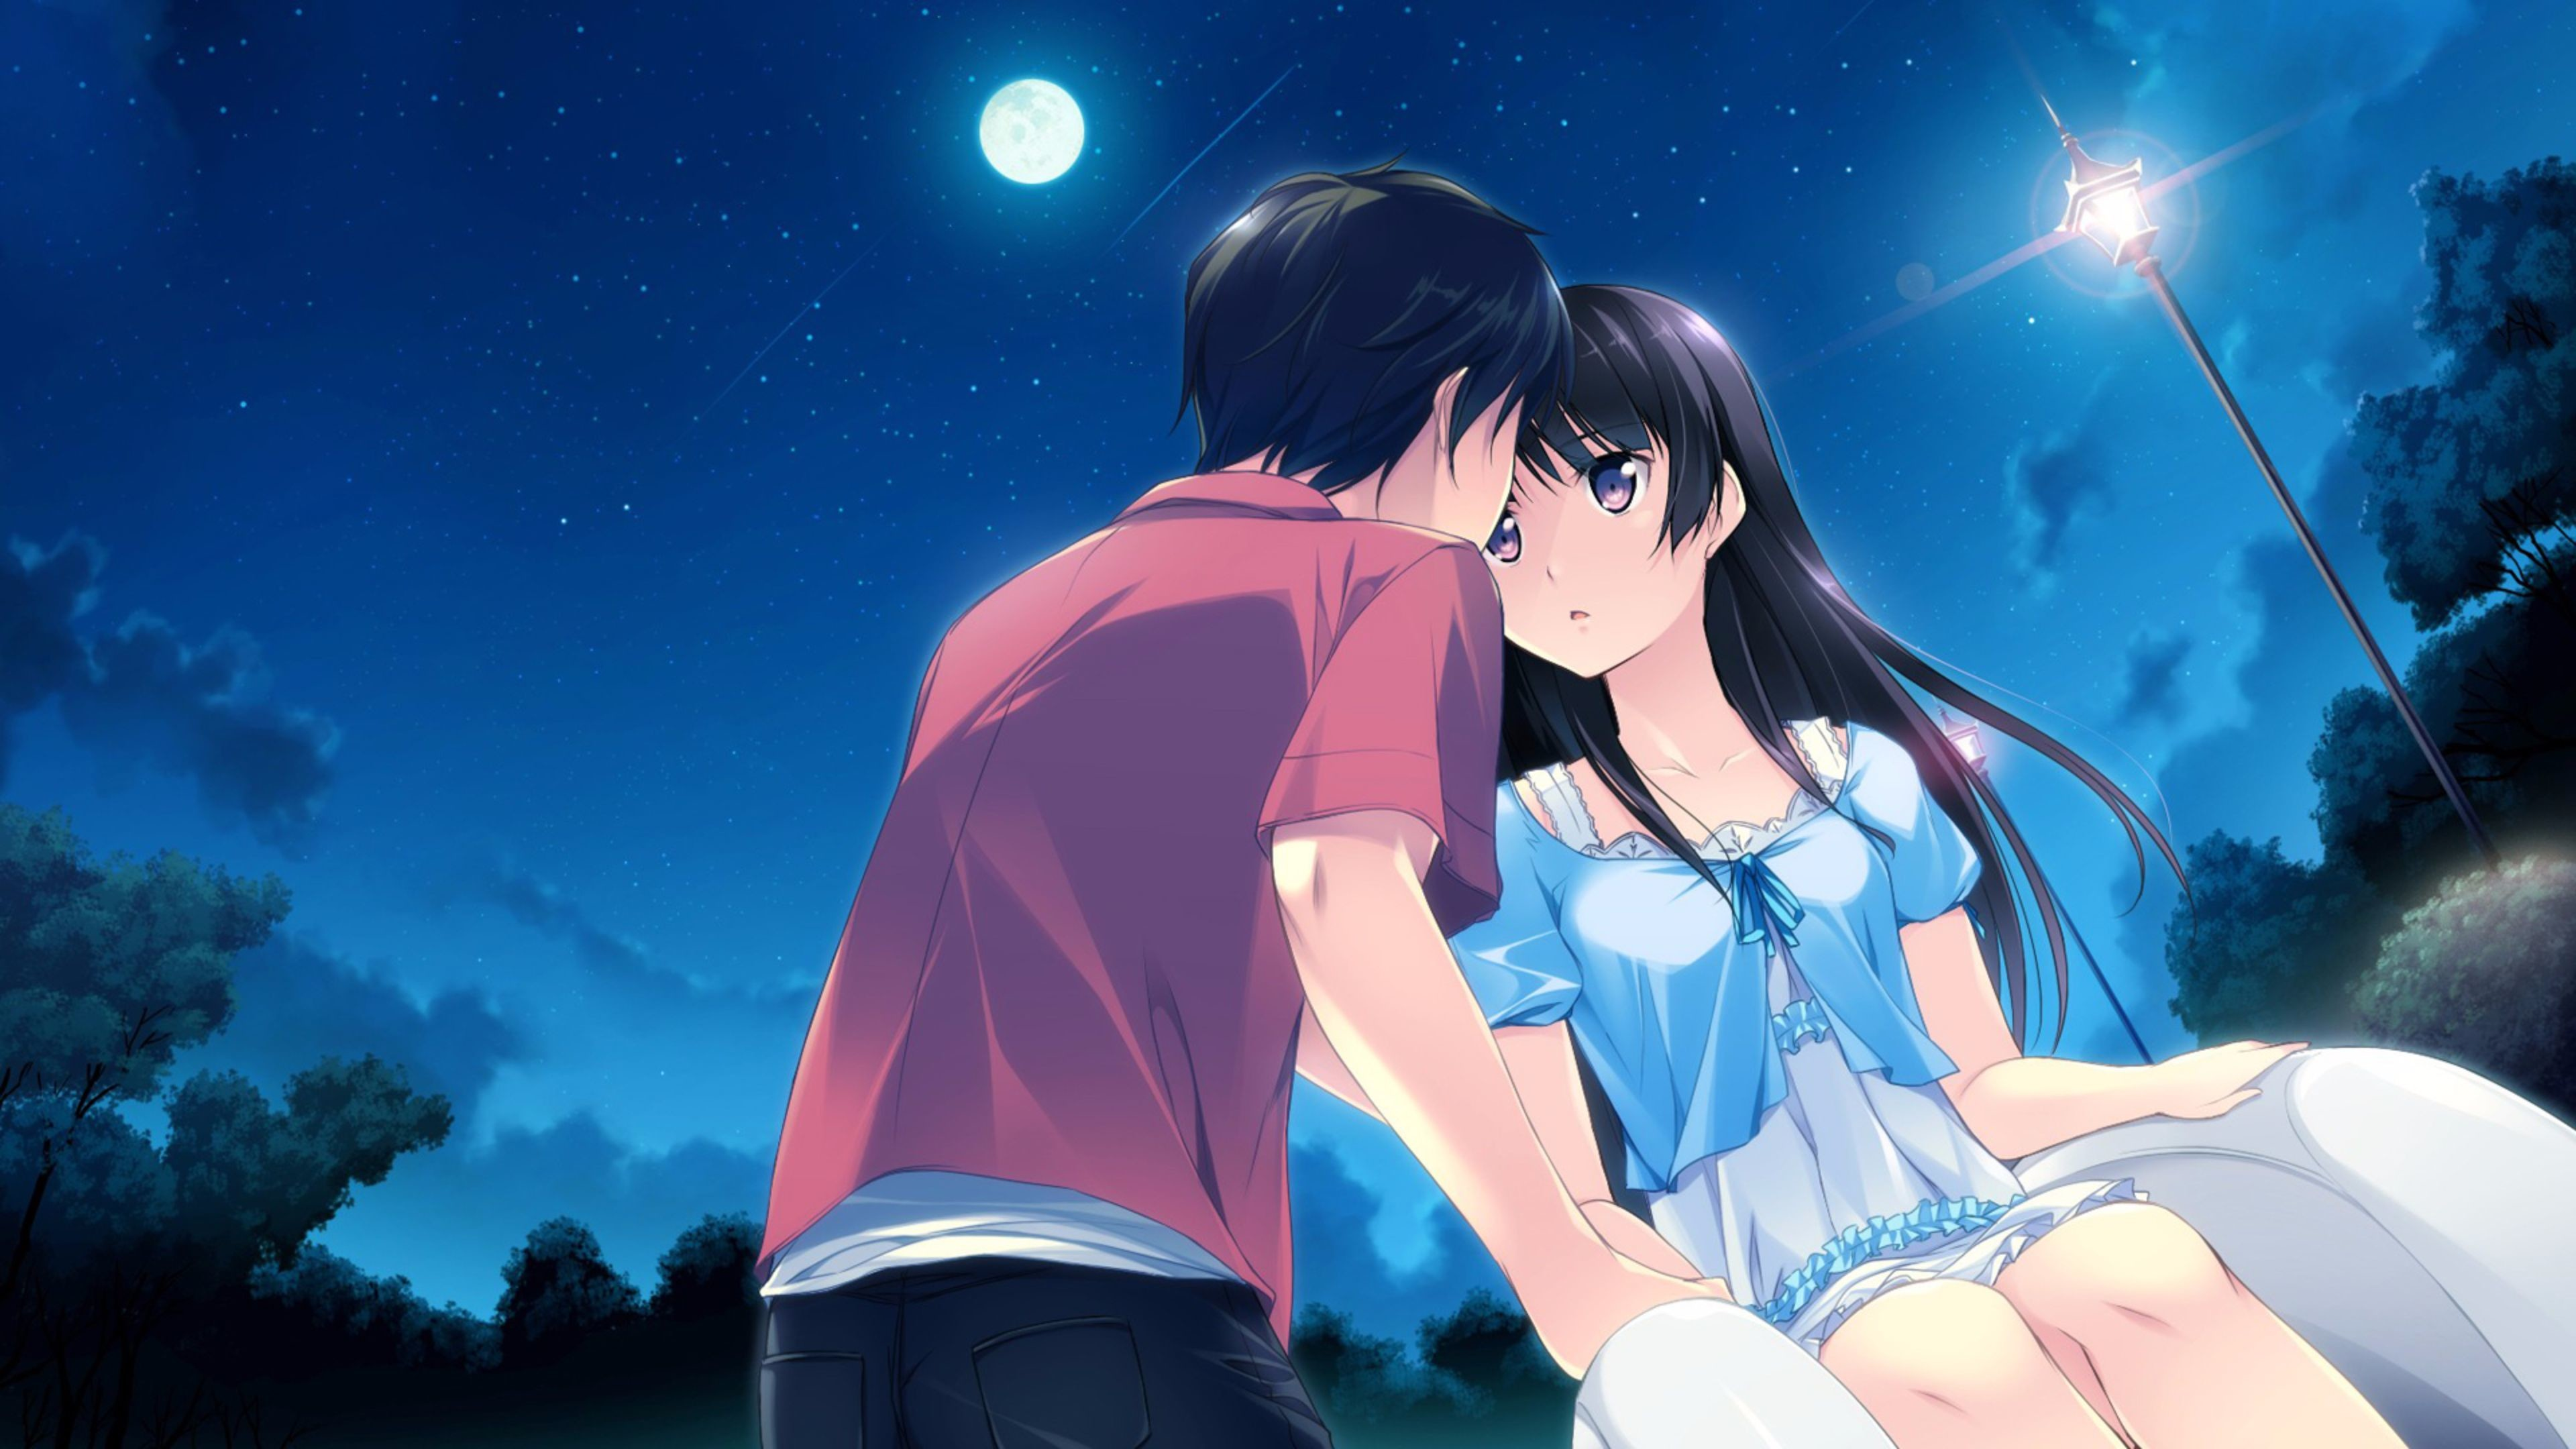 Hd Wallpapers Of Cute Kissing Couples Love Anime Wallpaper 74 Images